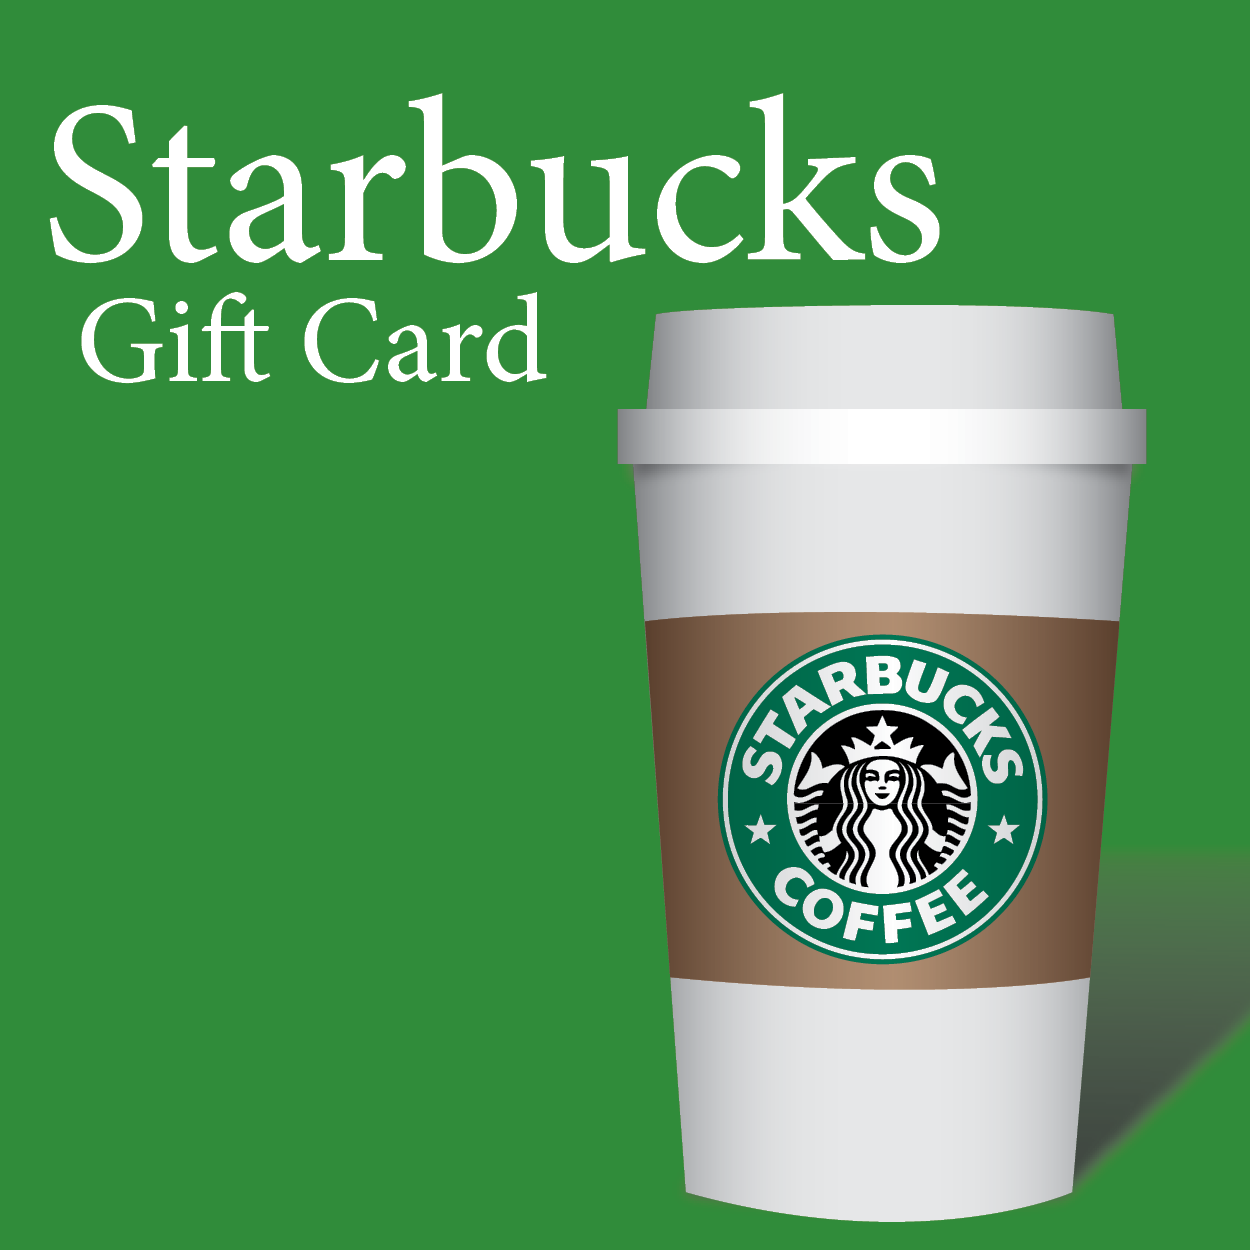 Win A 50 Starbucks Gift Card Completely Free Starbucks Gift Card Starbucks Card Free Starbucks Gift Card